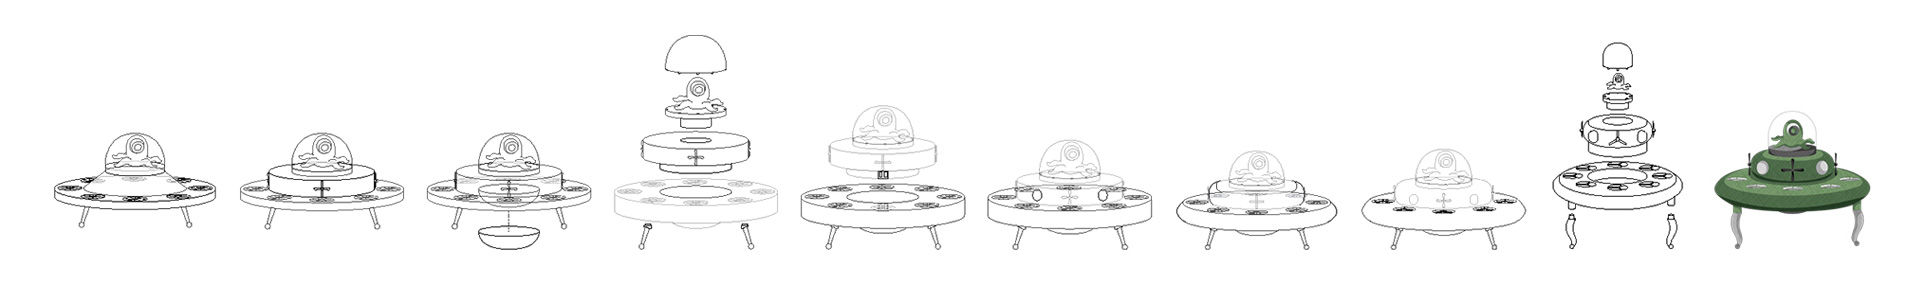 Development of UFO toy